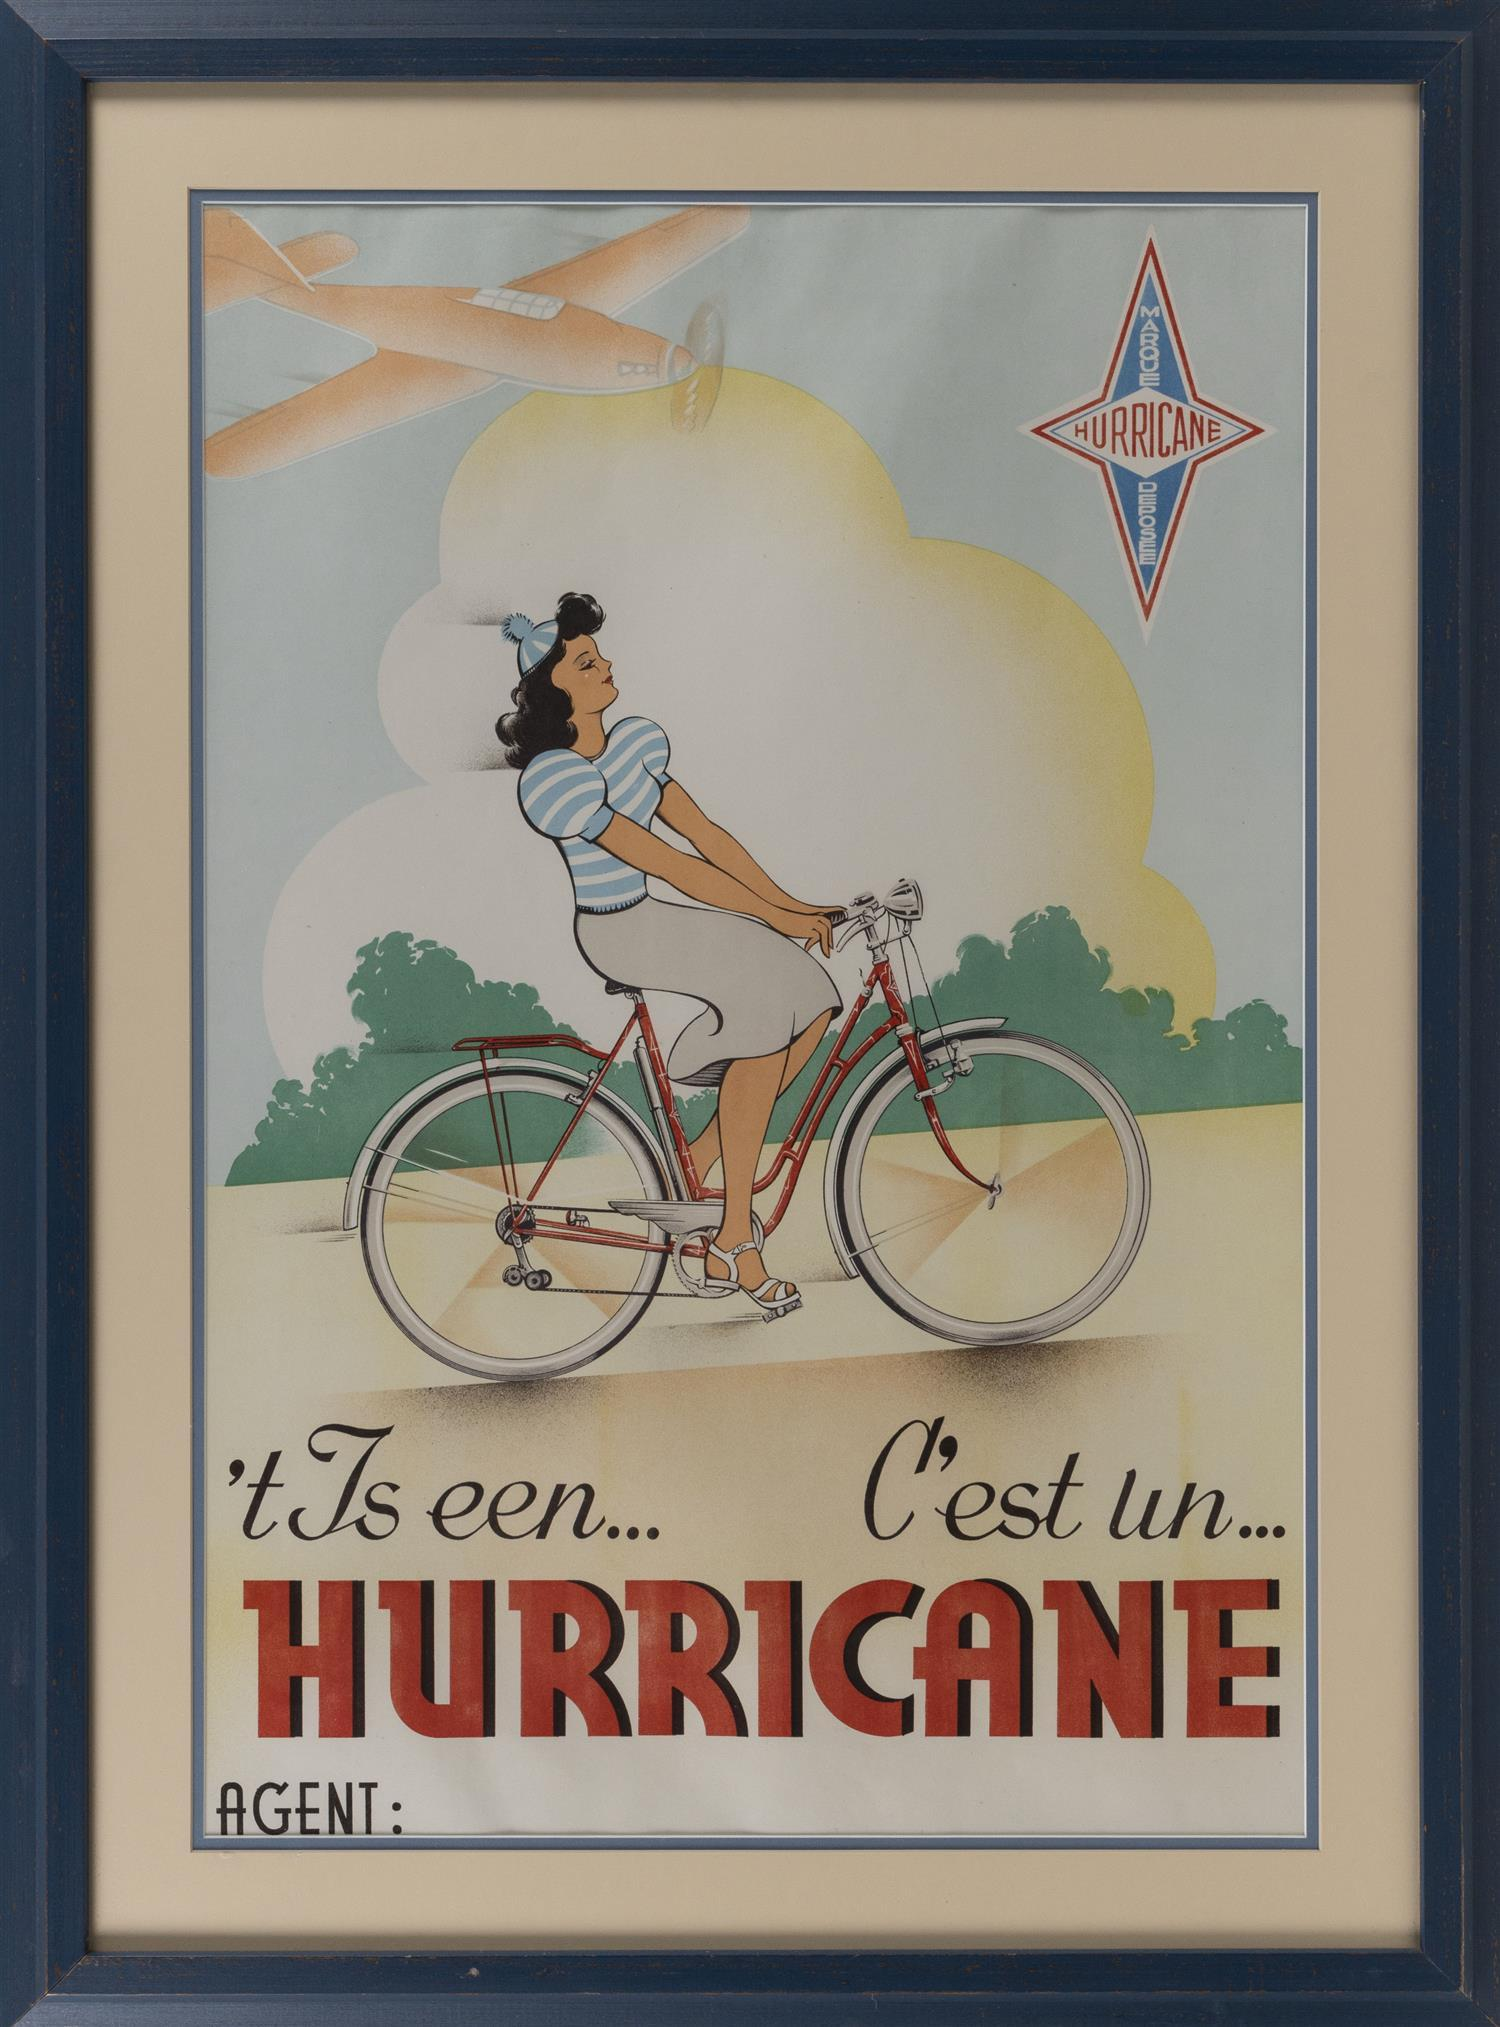 """VINTAGE """"HURRICANE"""" BICYCLE ADVERTISEMENT Depicts a woman riding a bicycle, with an airplane overhead. 31.5"""" x 21"""". Framed 39"""" x 30""""."""